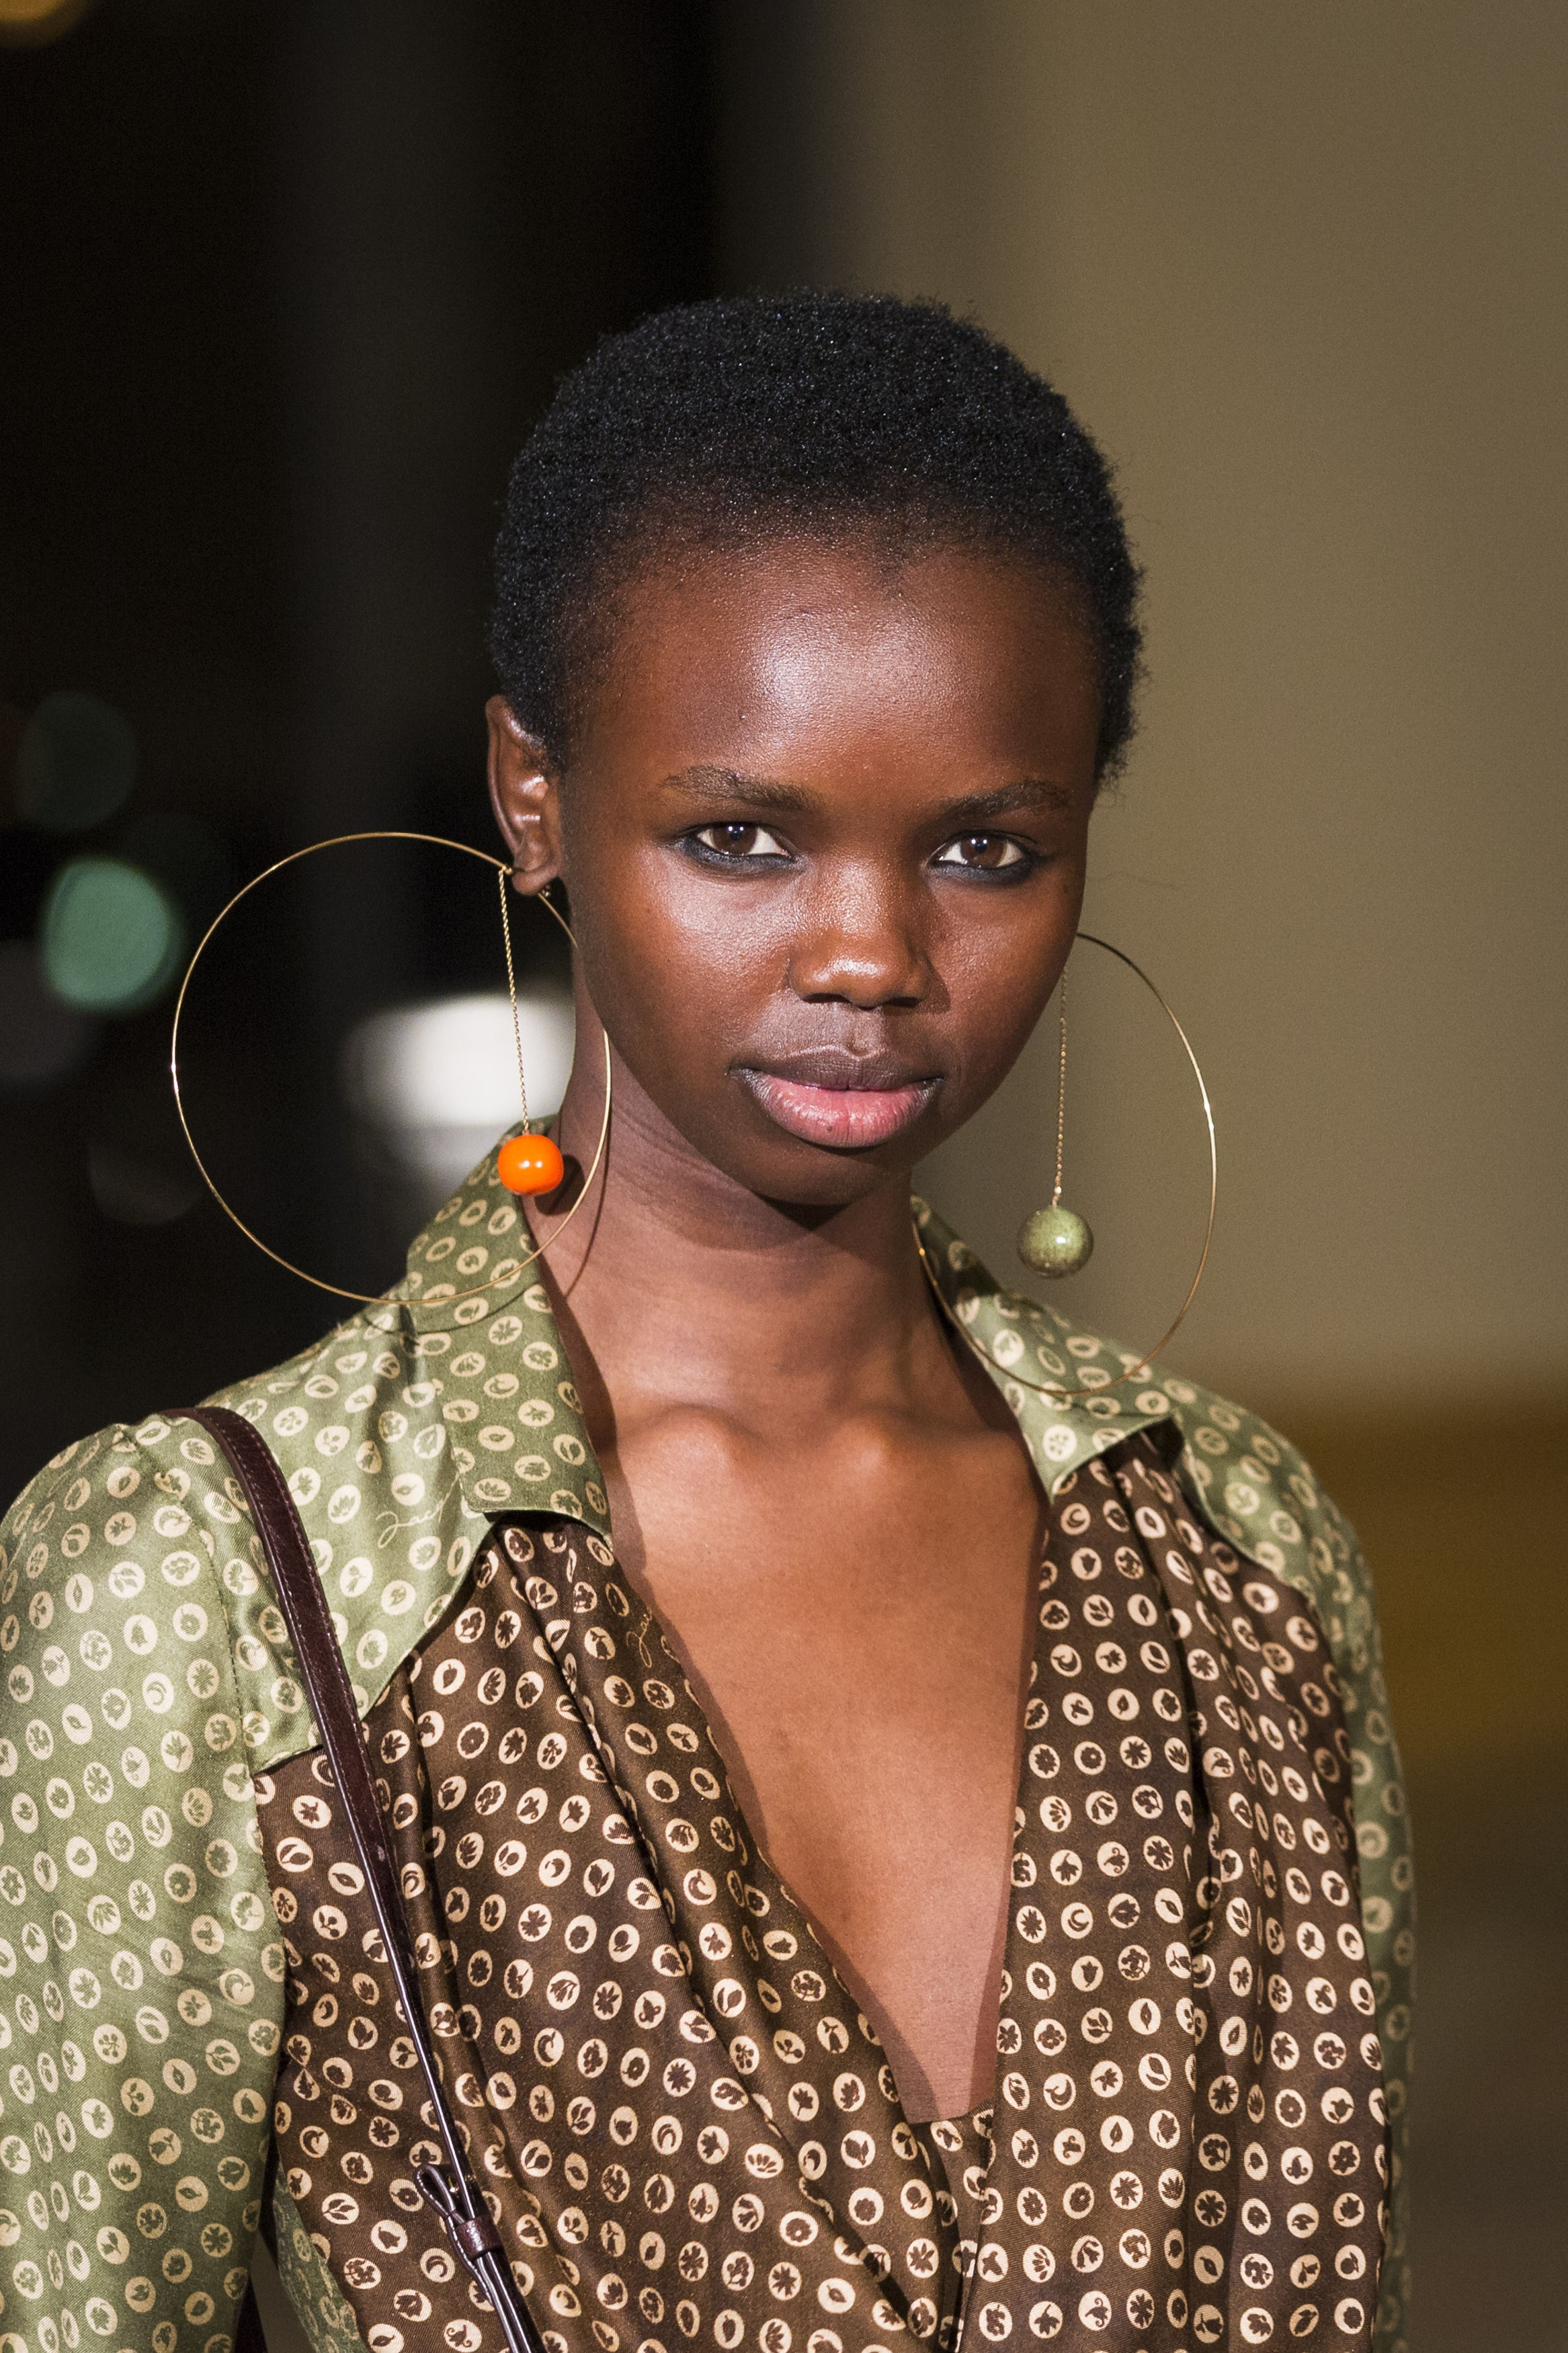 Gold hoops at Jacquemus Fall/Winter 2018/19 show. Image: Courtesy Richard Bord/WireImage